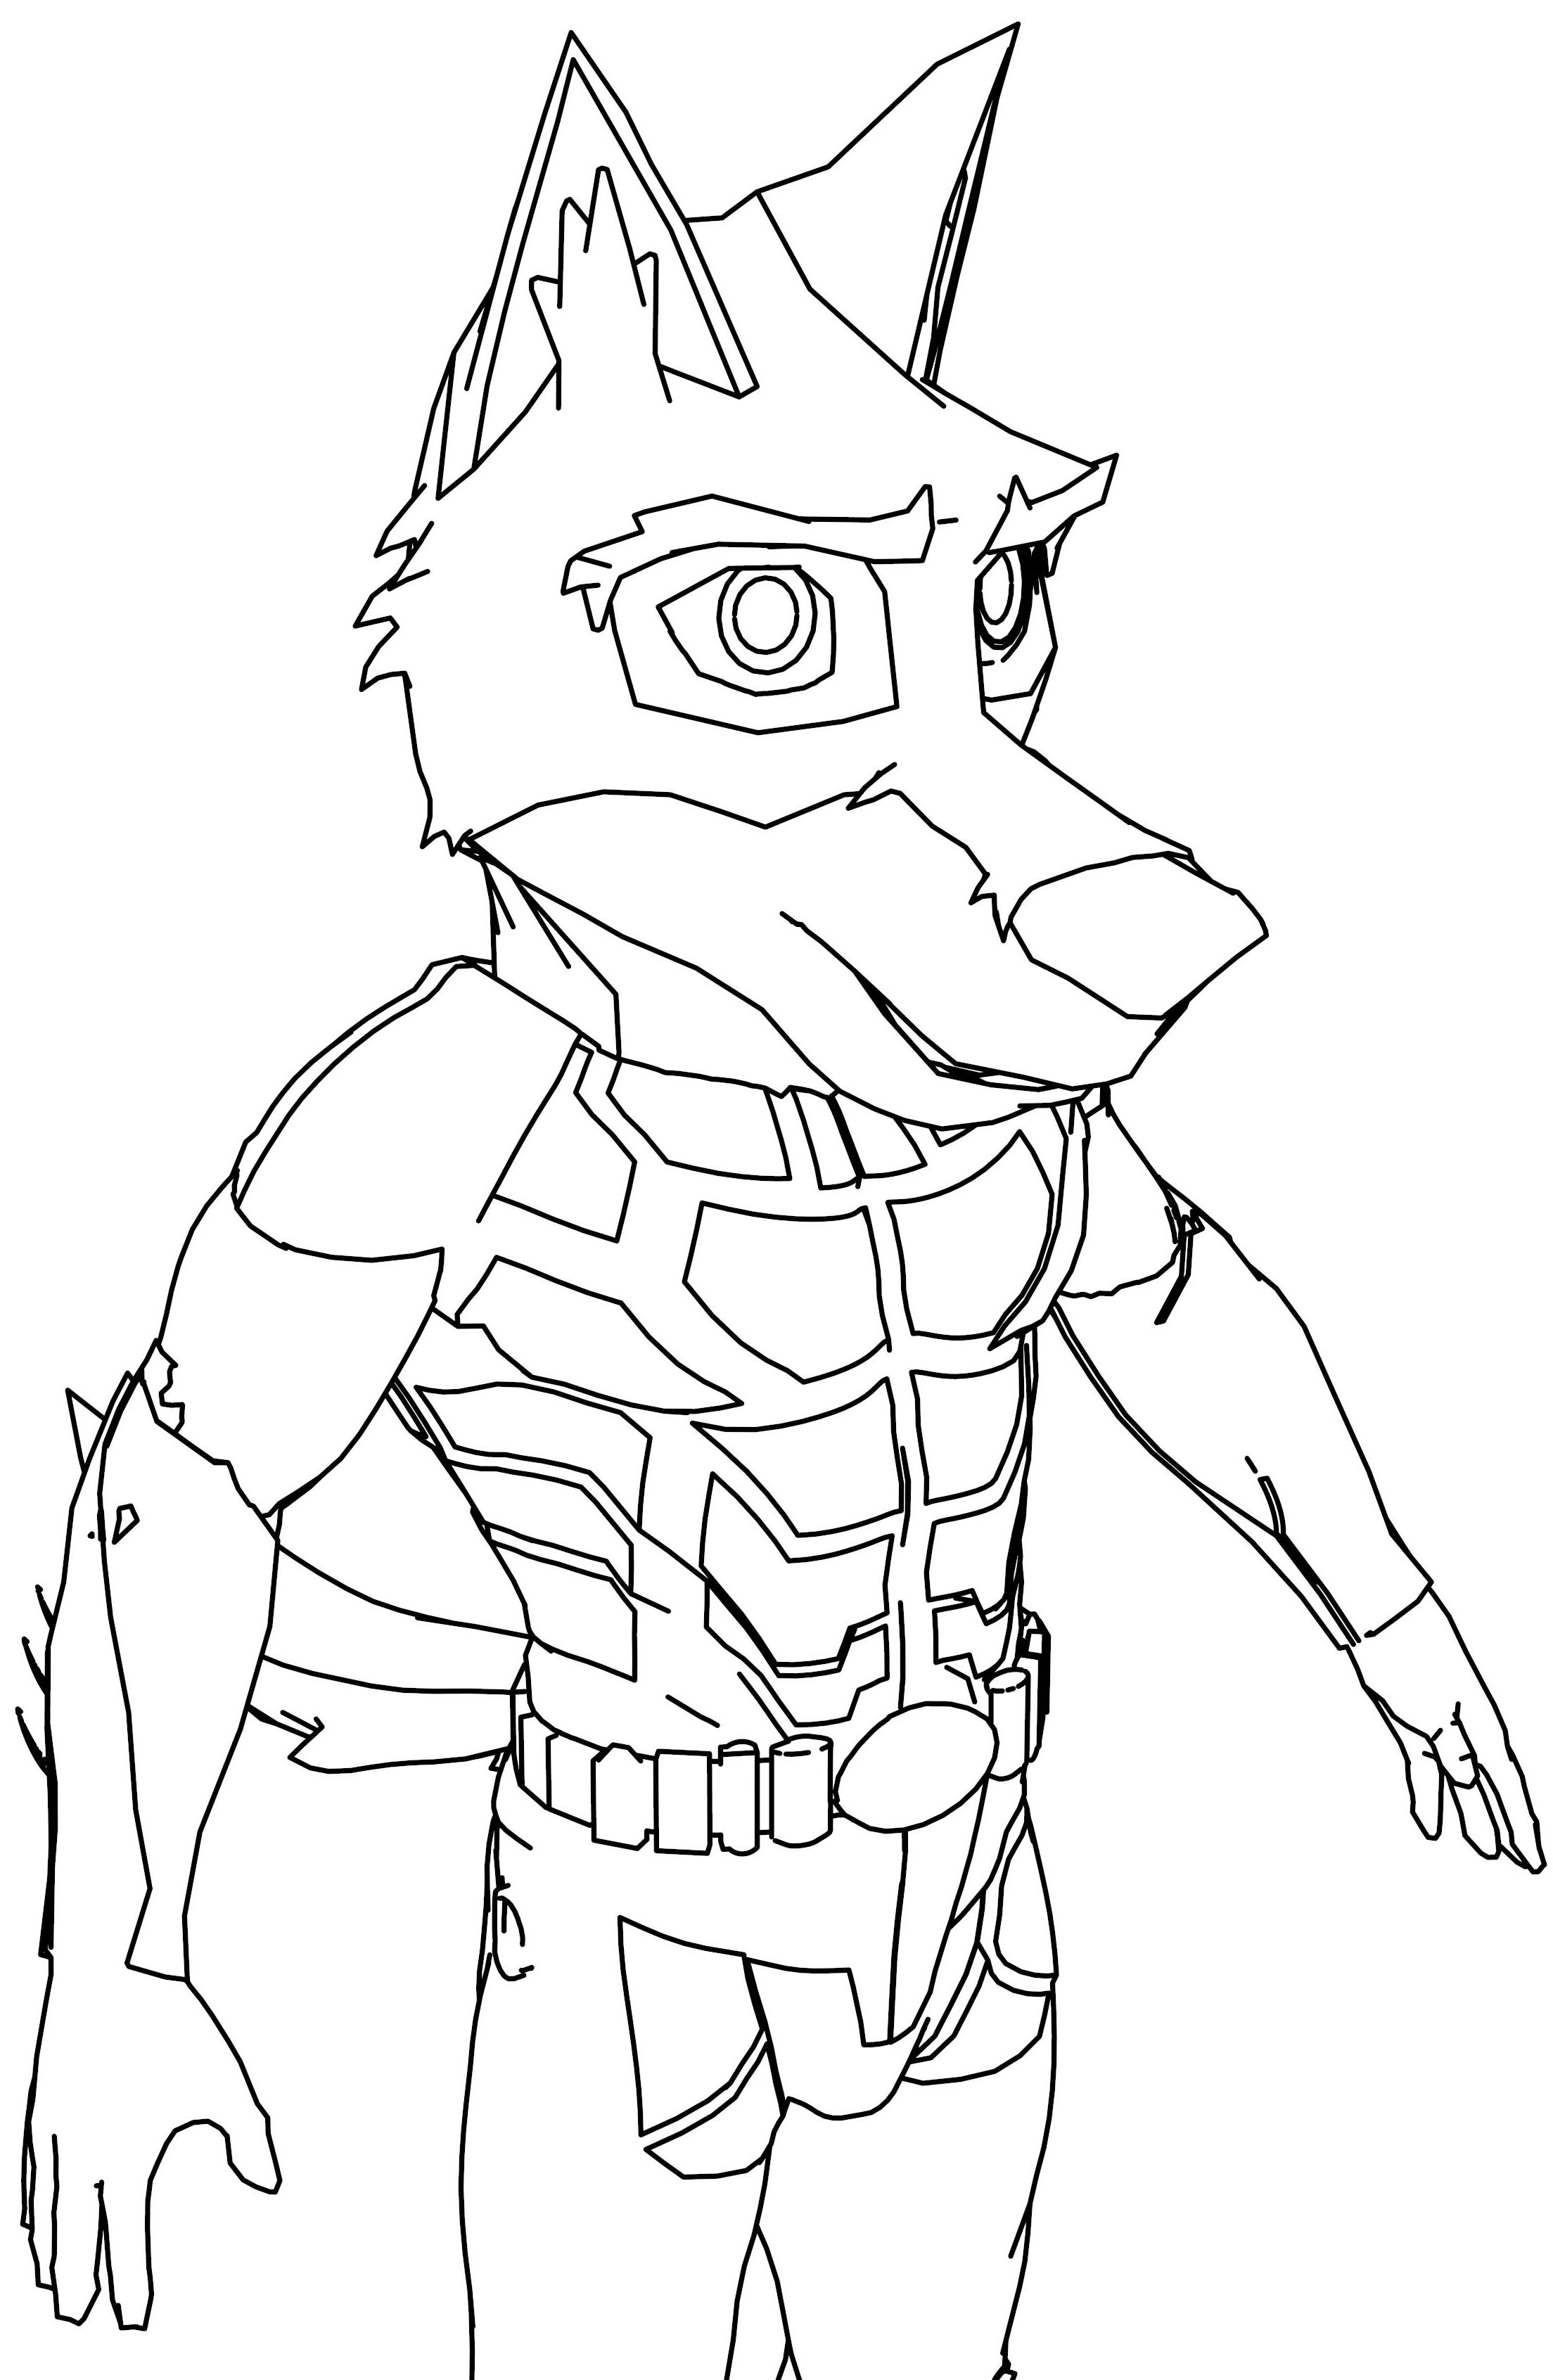 Coyote Furry Coloring Page Wecoloringpage